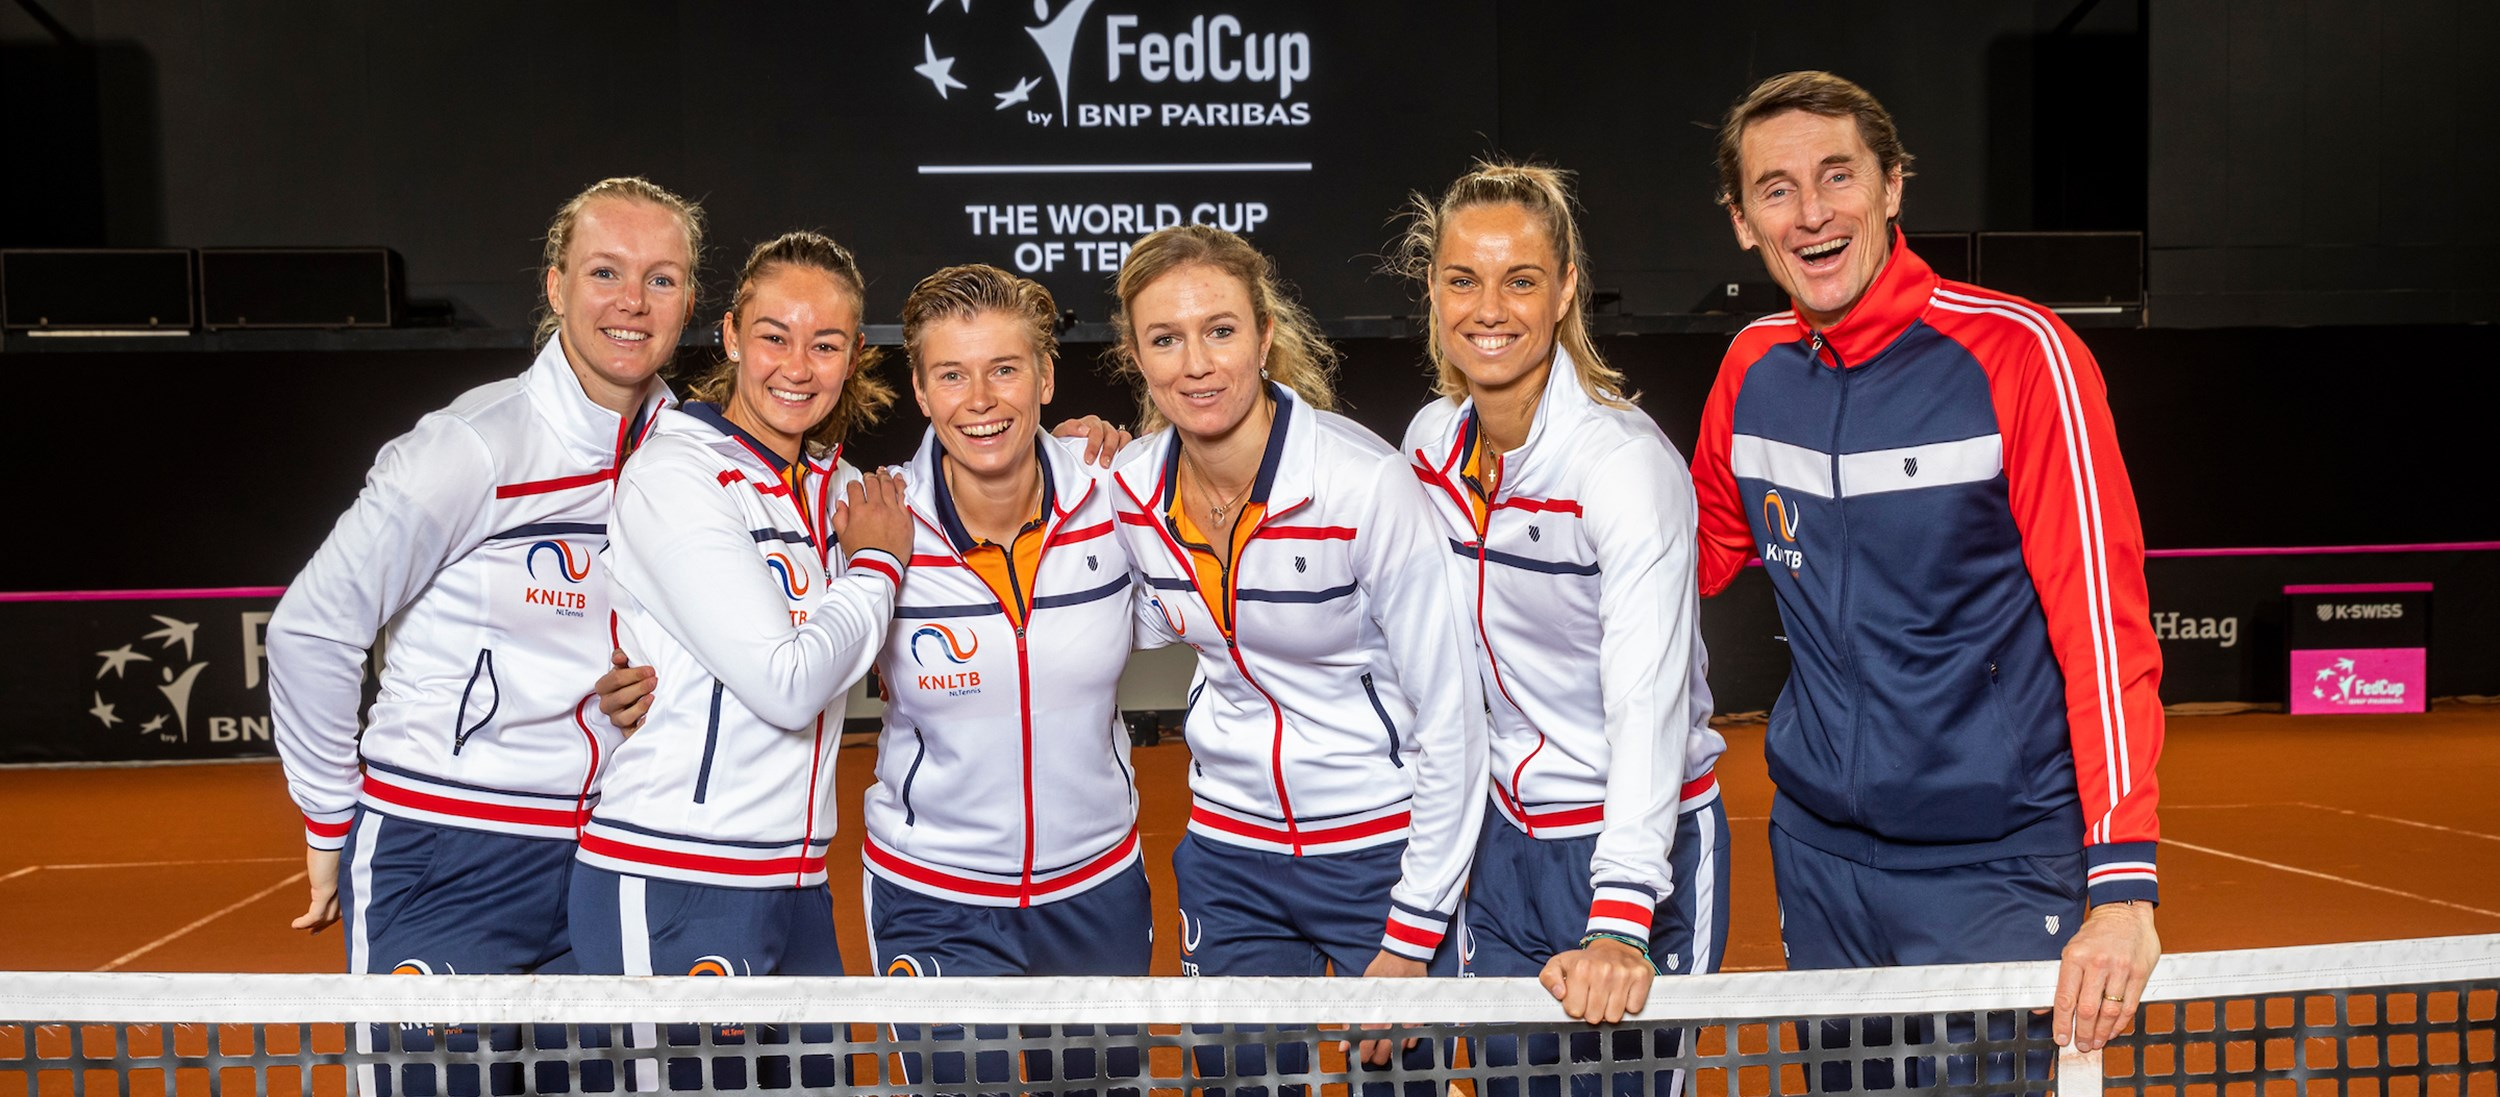 Fed Cup team